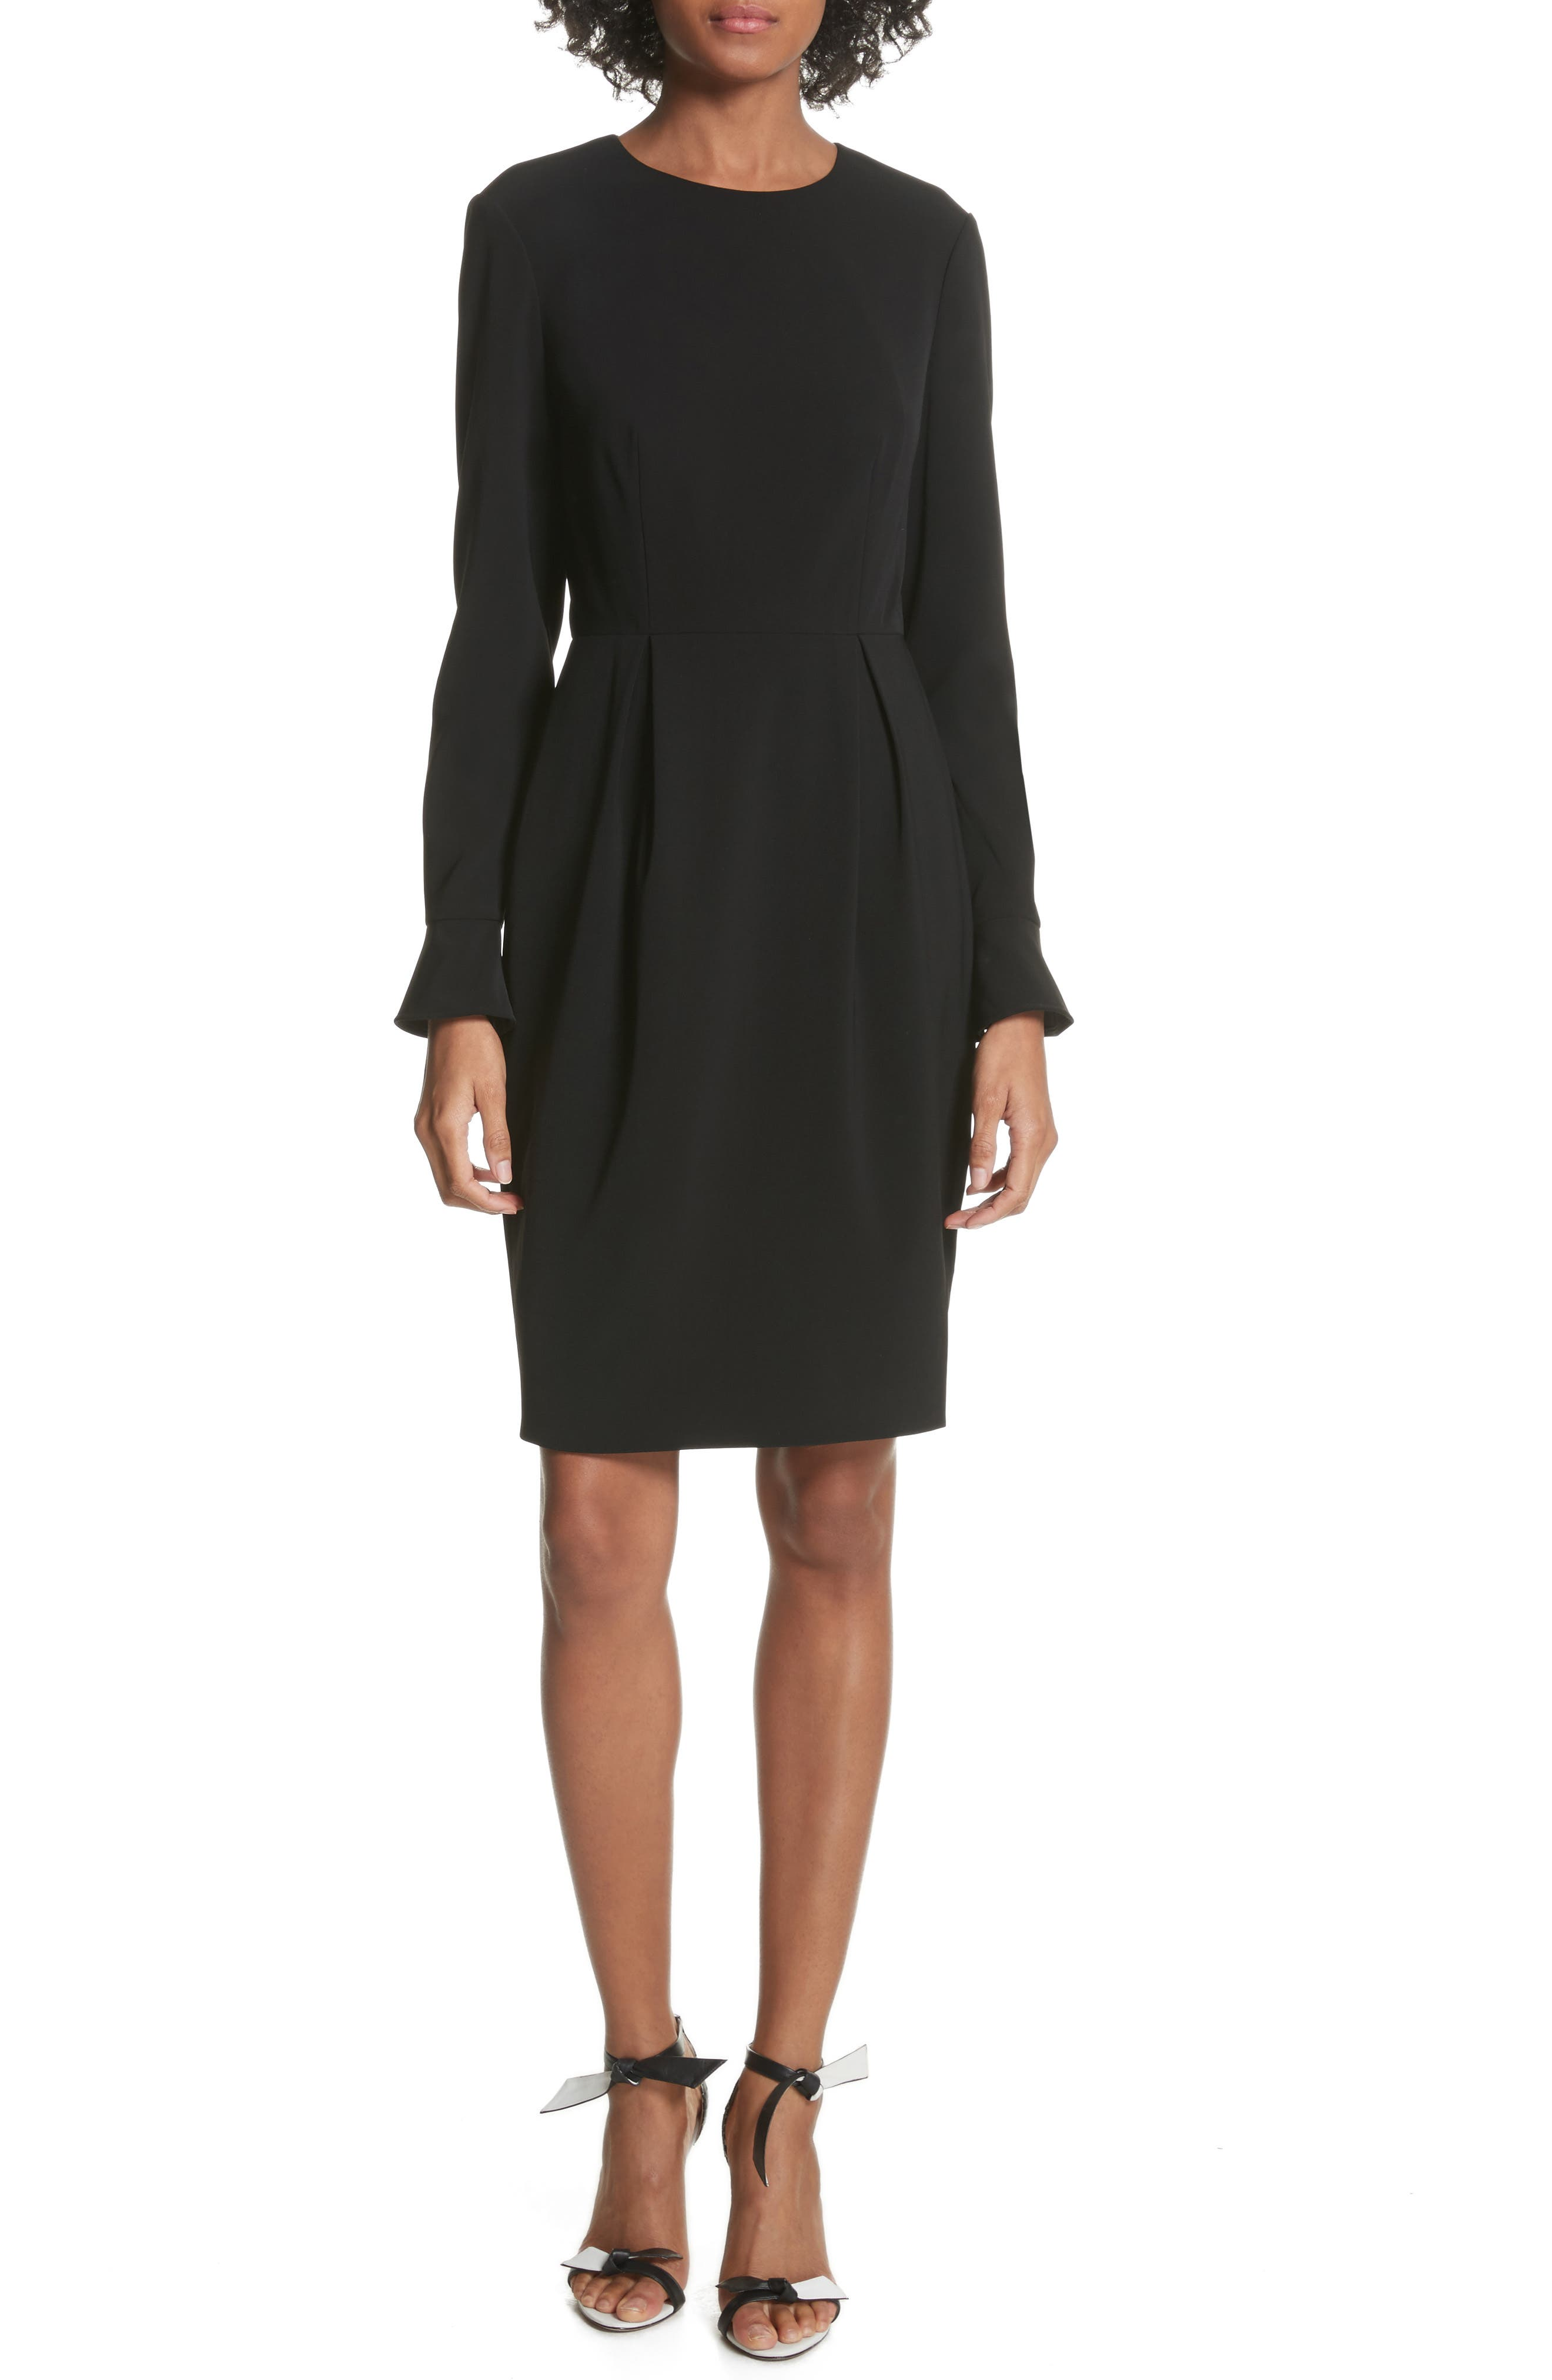 Yulid Flare Cuff Pencil Dress,                         Main,                         color, Black